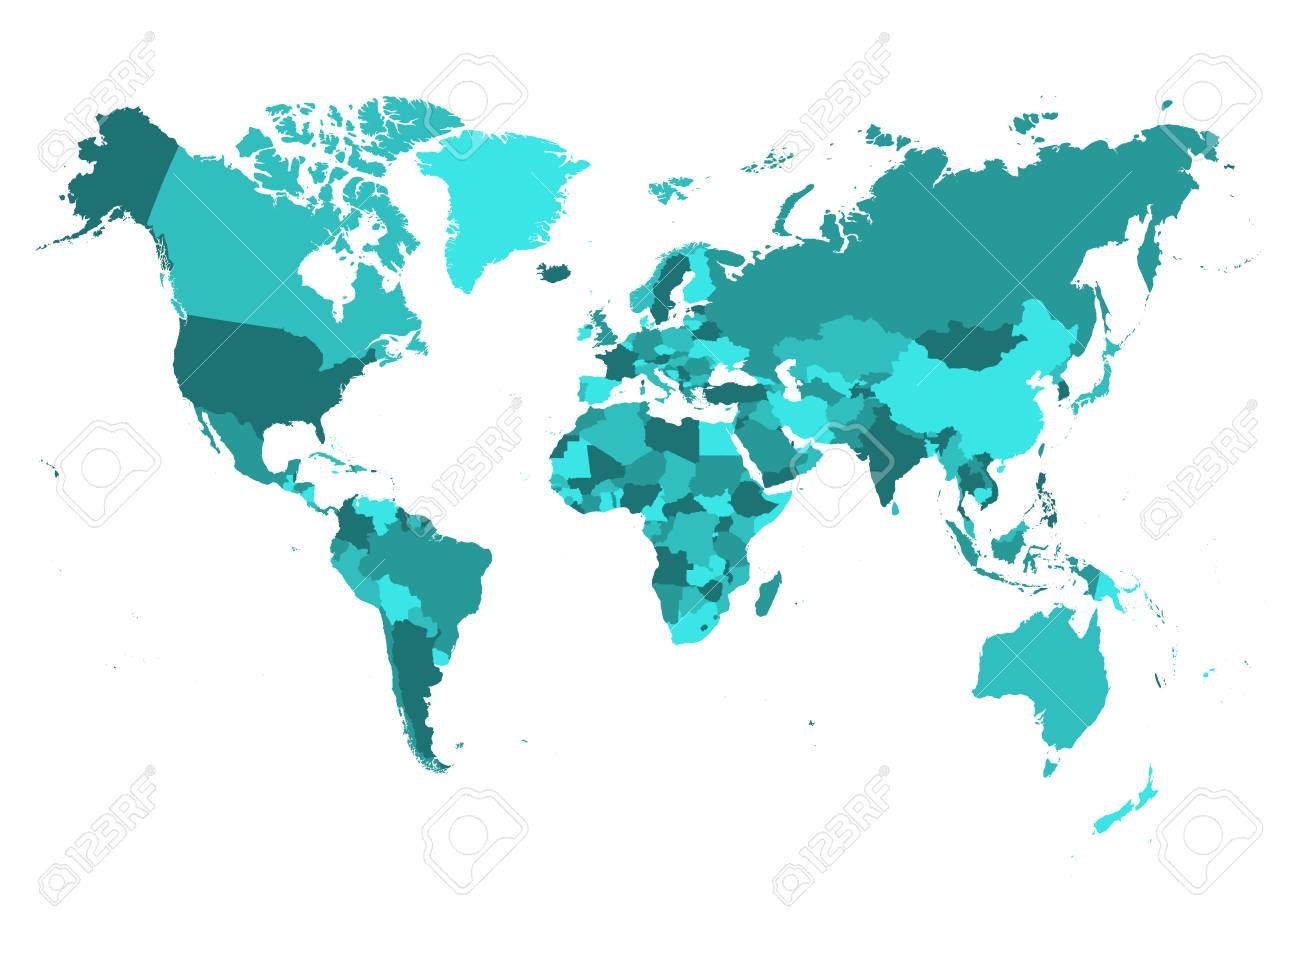 World map in four shades of turquoise blu on white background. High detail political map with country names. Vector illustration. - 124996349